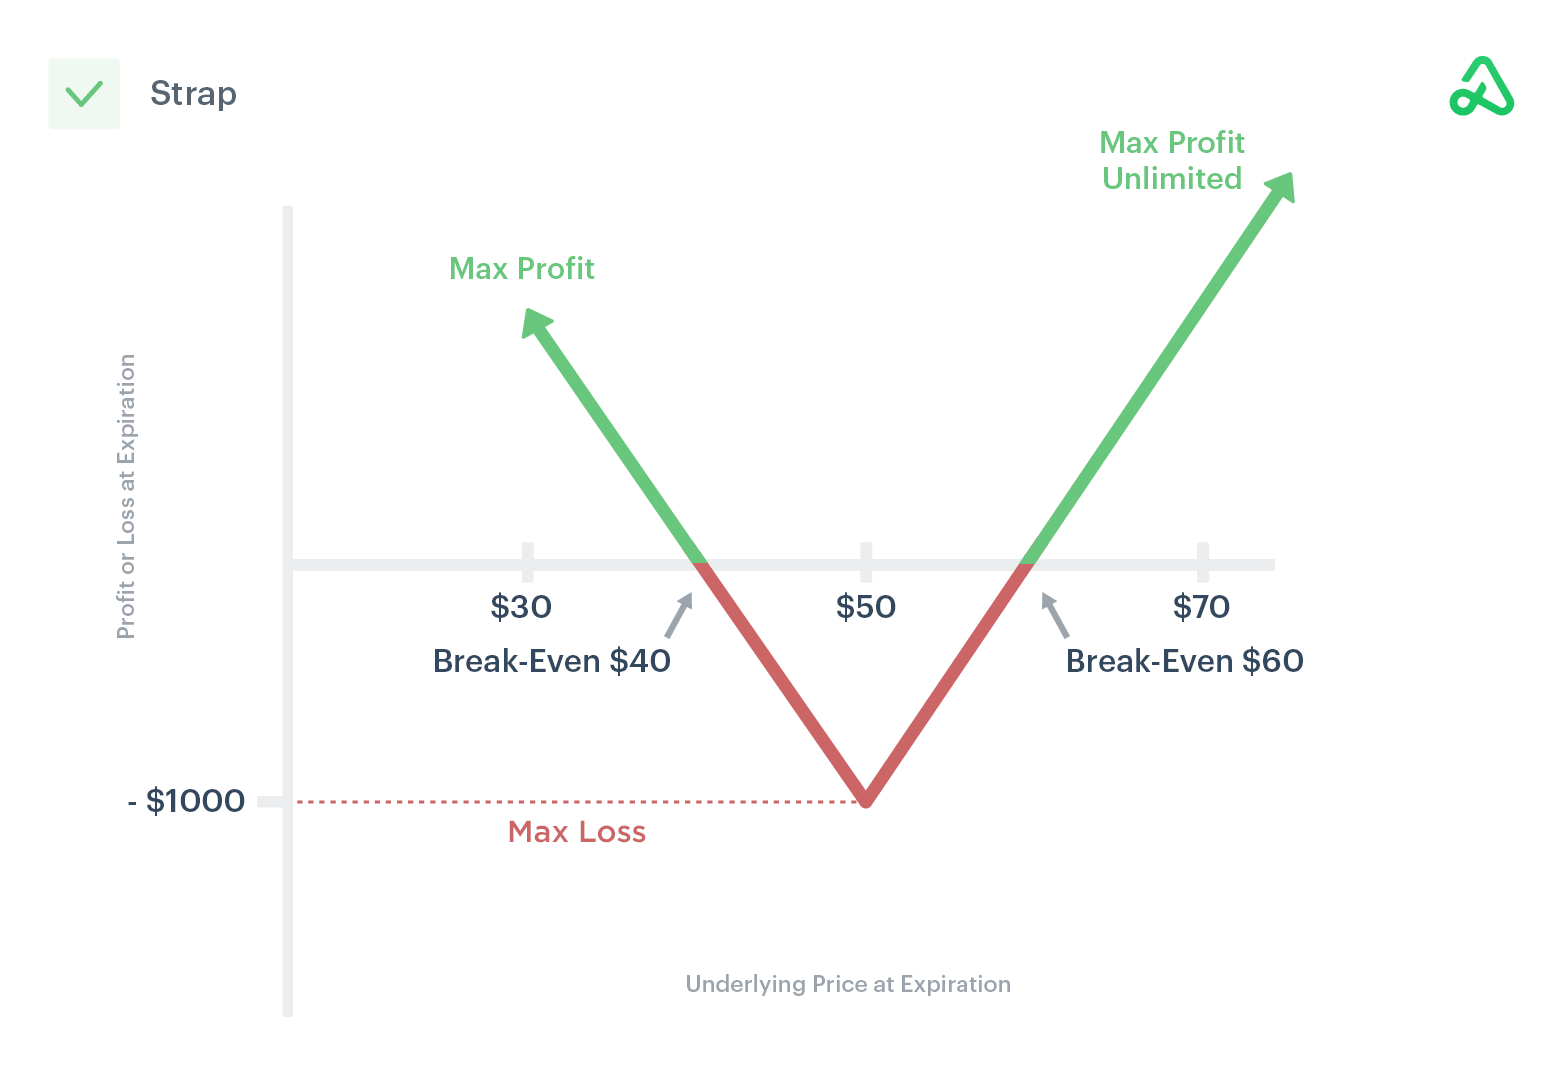 Image of long strap payoff diagram showing max profit, max loss, and break-even points